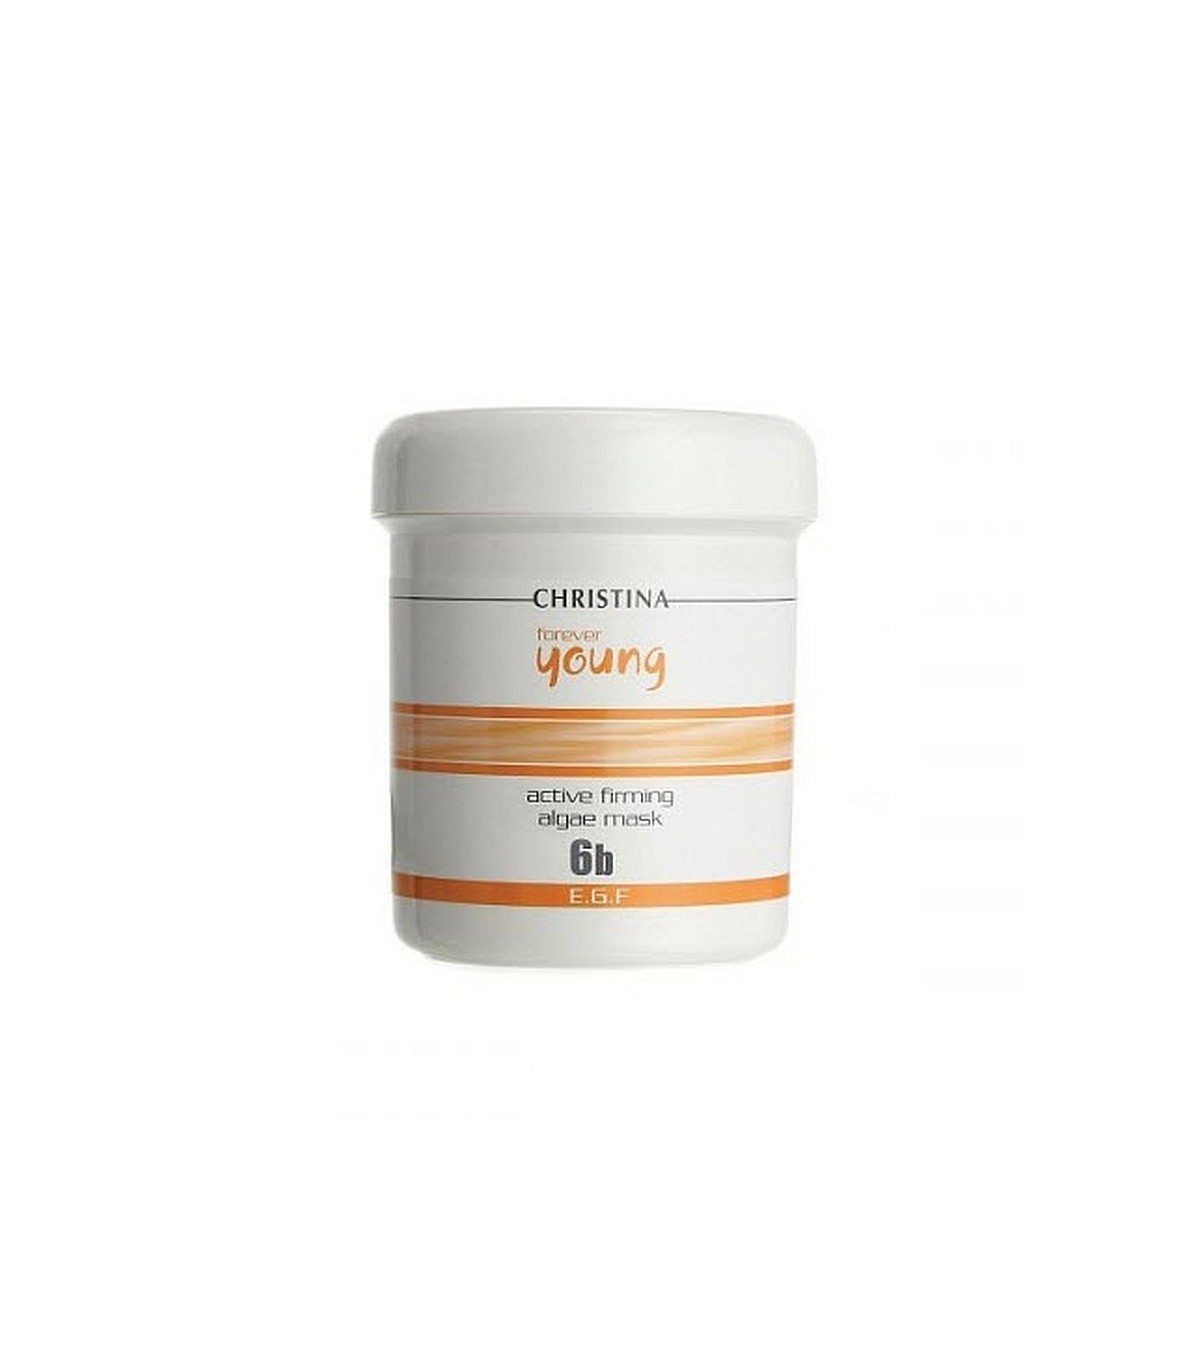 Active Firming Algae Mask - Step 6b - Forever Young - Christina - 500 ml